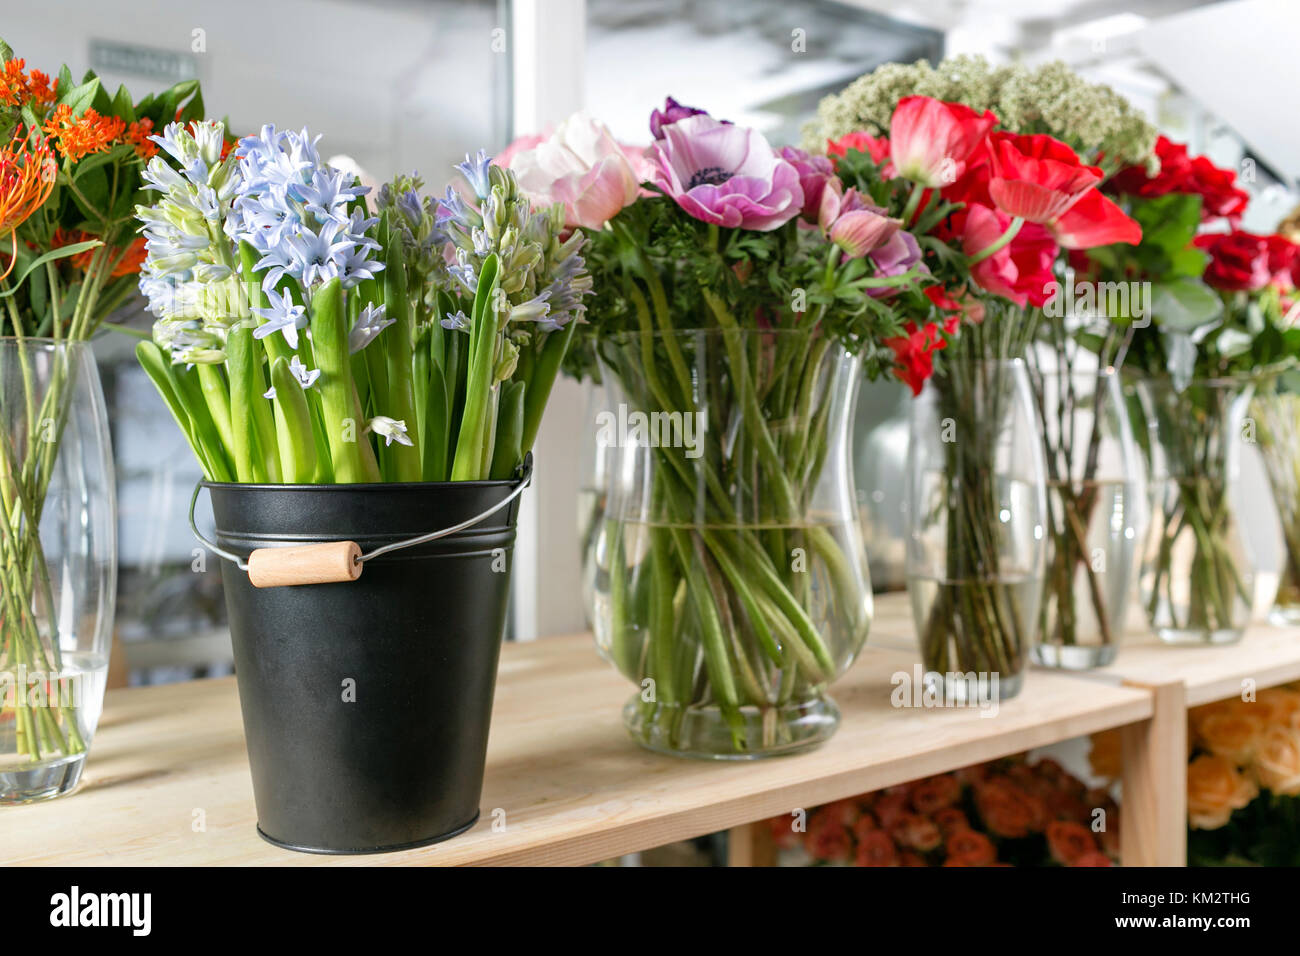 Different varieties fresh spring flowers in refrigerator for fresh spring flowers in refrigerator for flowers in flower shop bouquets on shelf florist business mightylinksfo